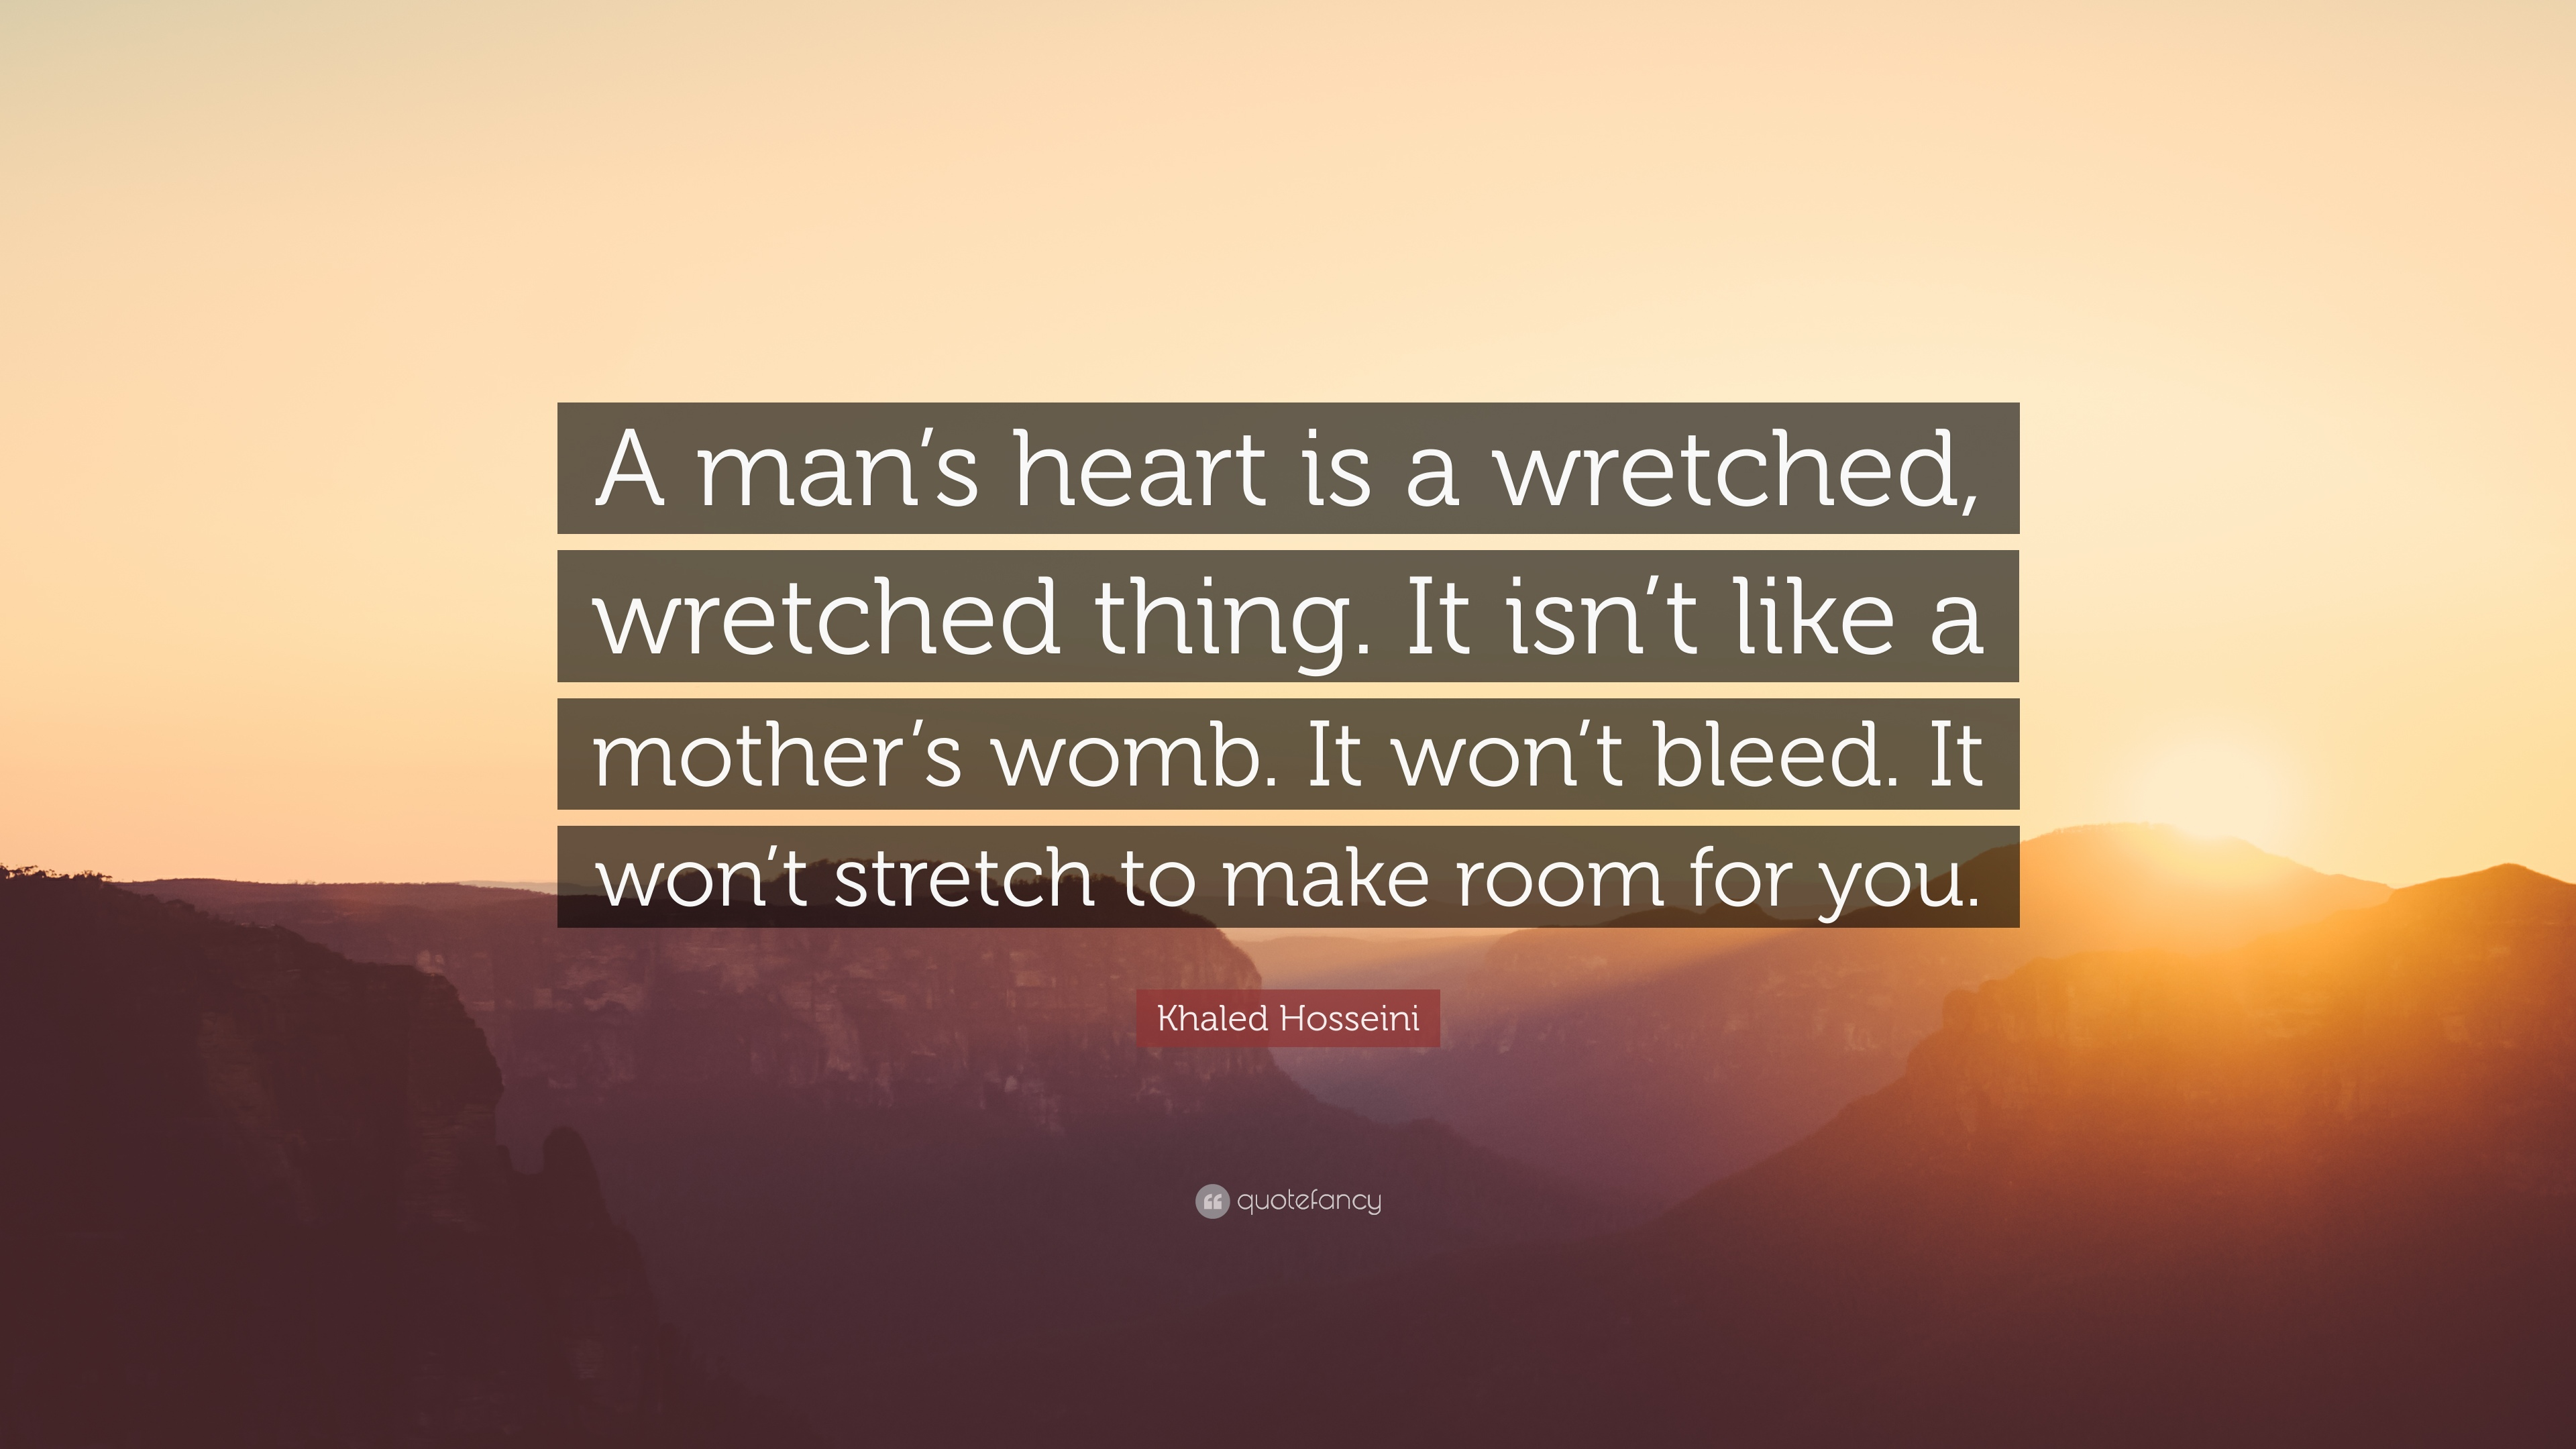 Image result for A men's heart is a wretched ,wretched thing.It isn't like a mother womb,It wont bleed.It wont stretch to make room for you.